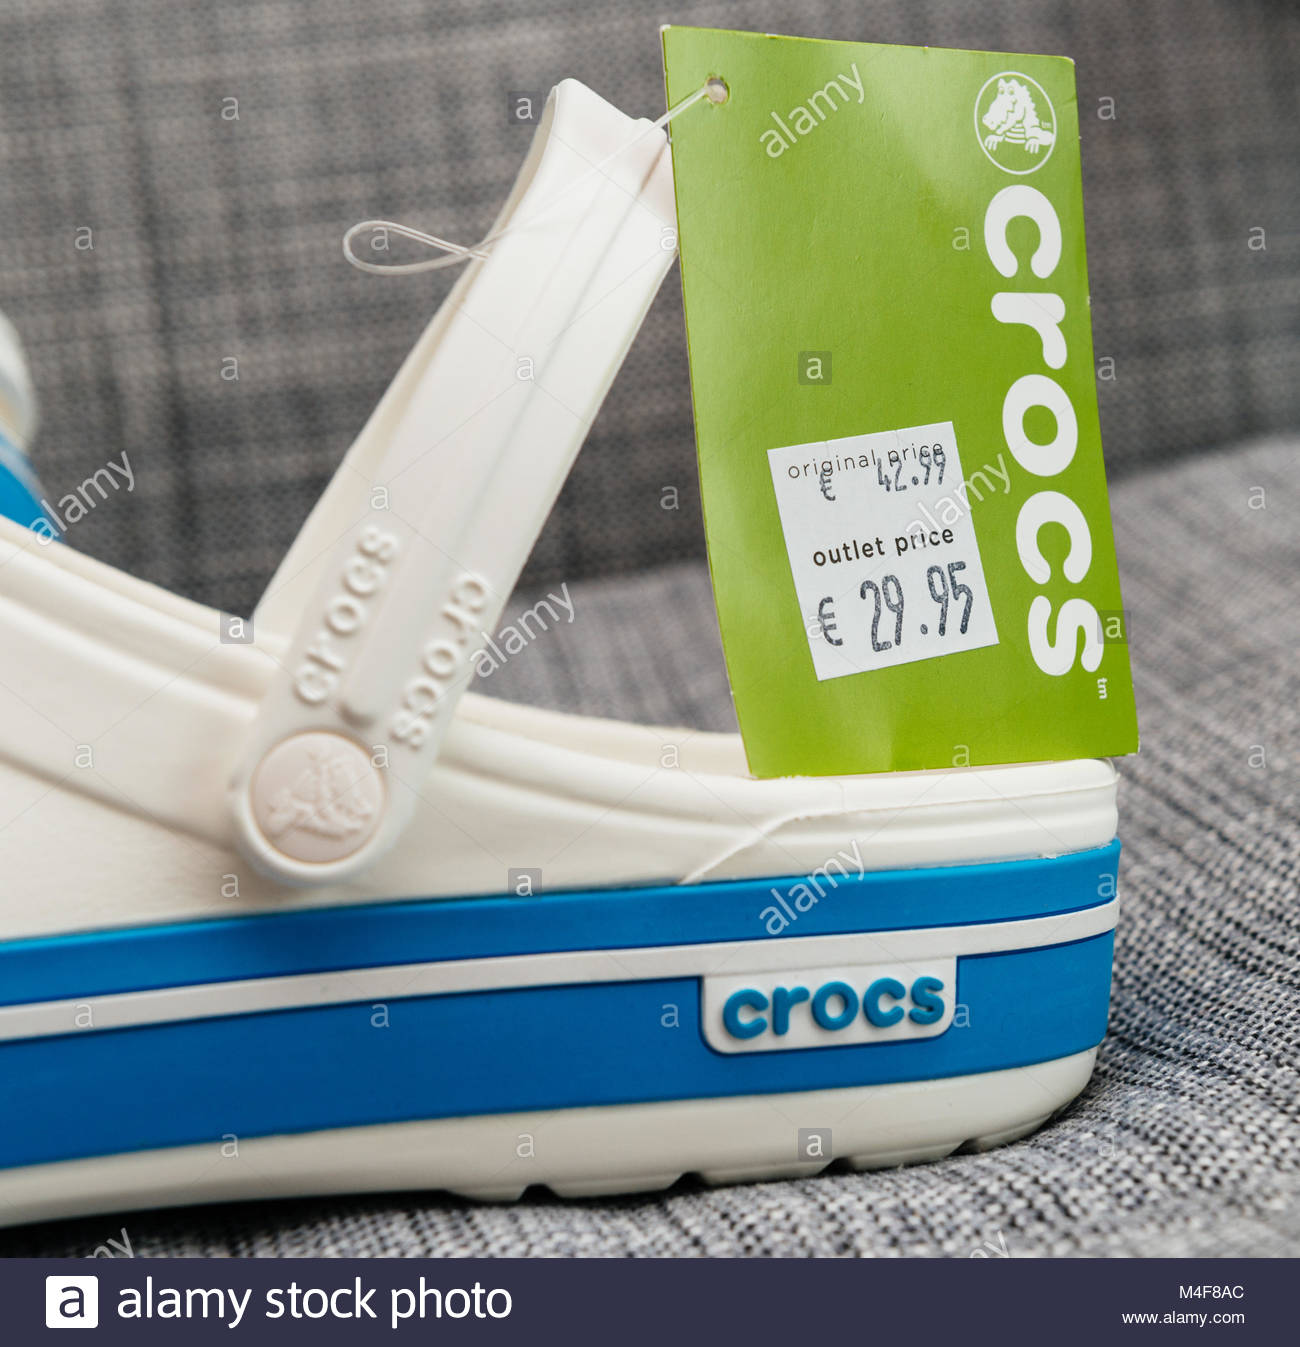 f0f11428f559e8 Crocs clogs shoes with regular and outlet price Stock Photo ...